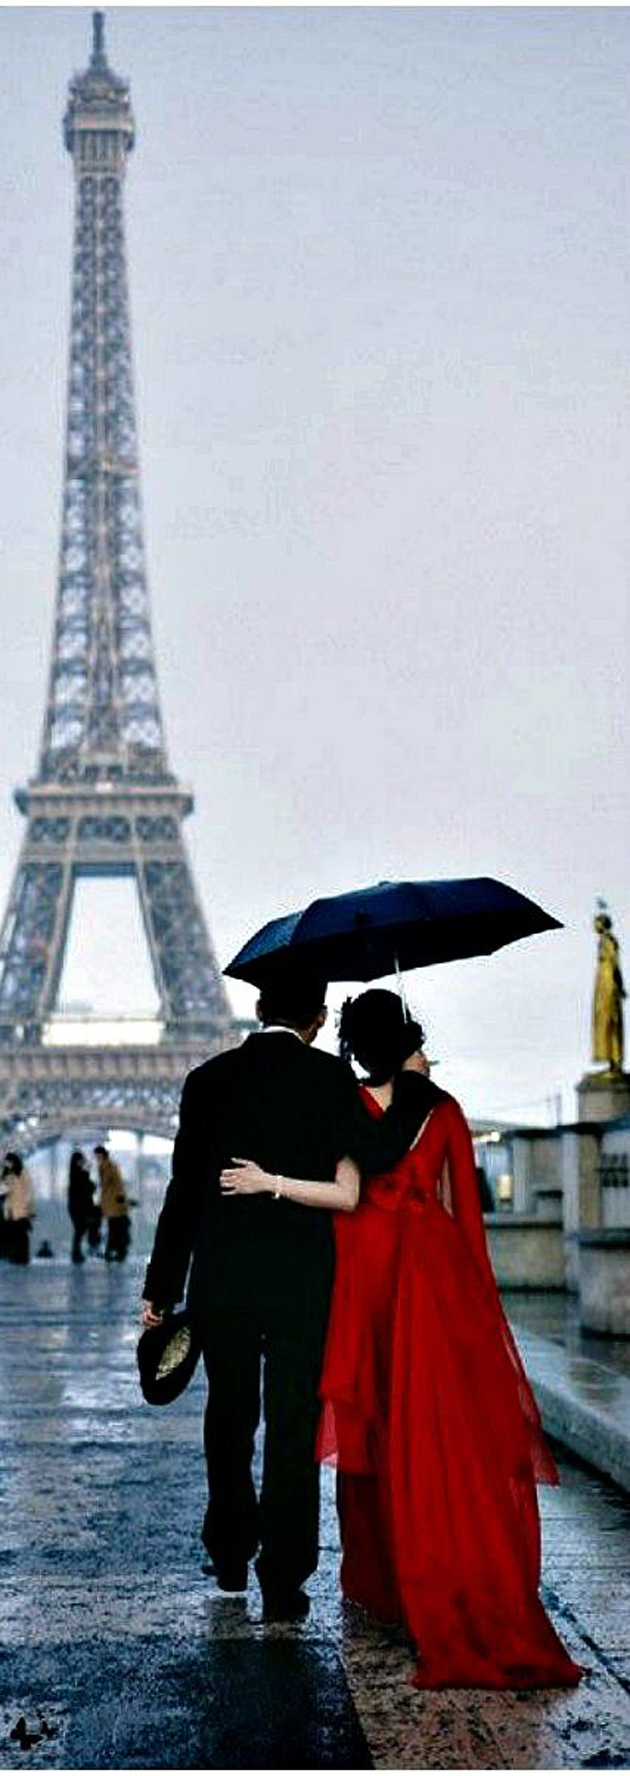 Romantic Couples Photography In Rain (56)